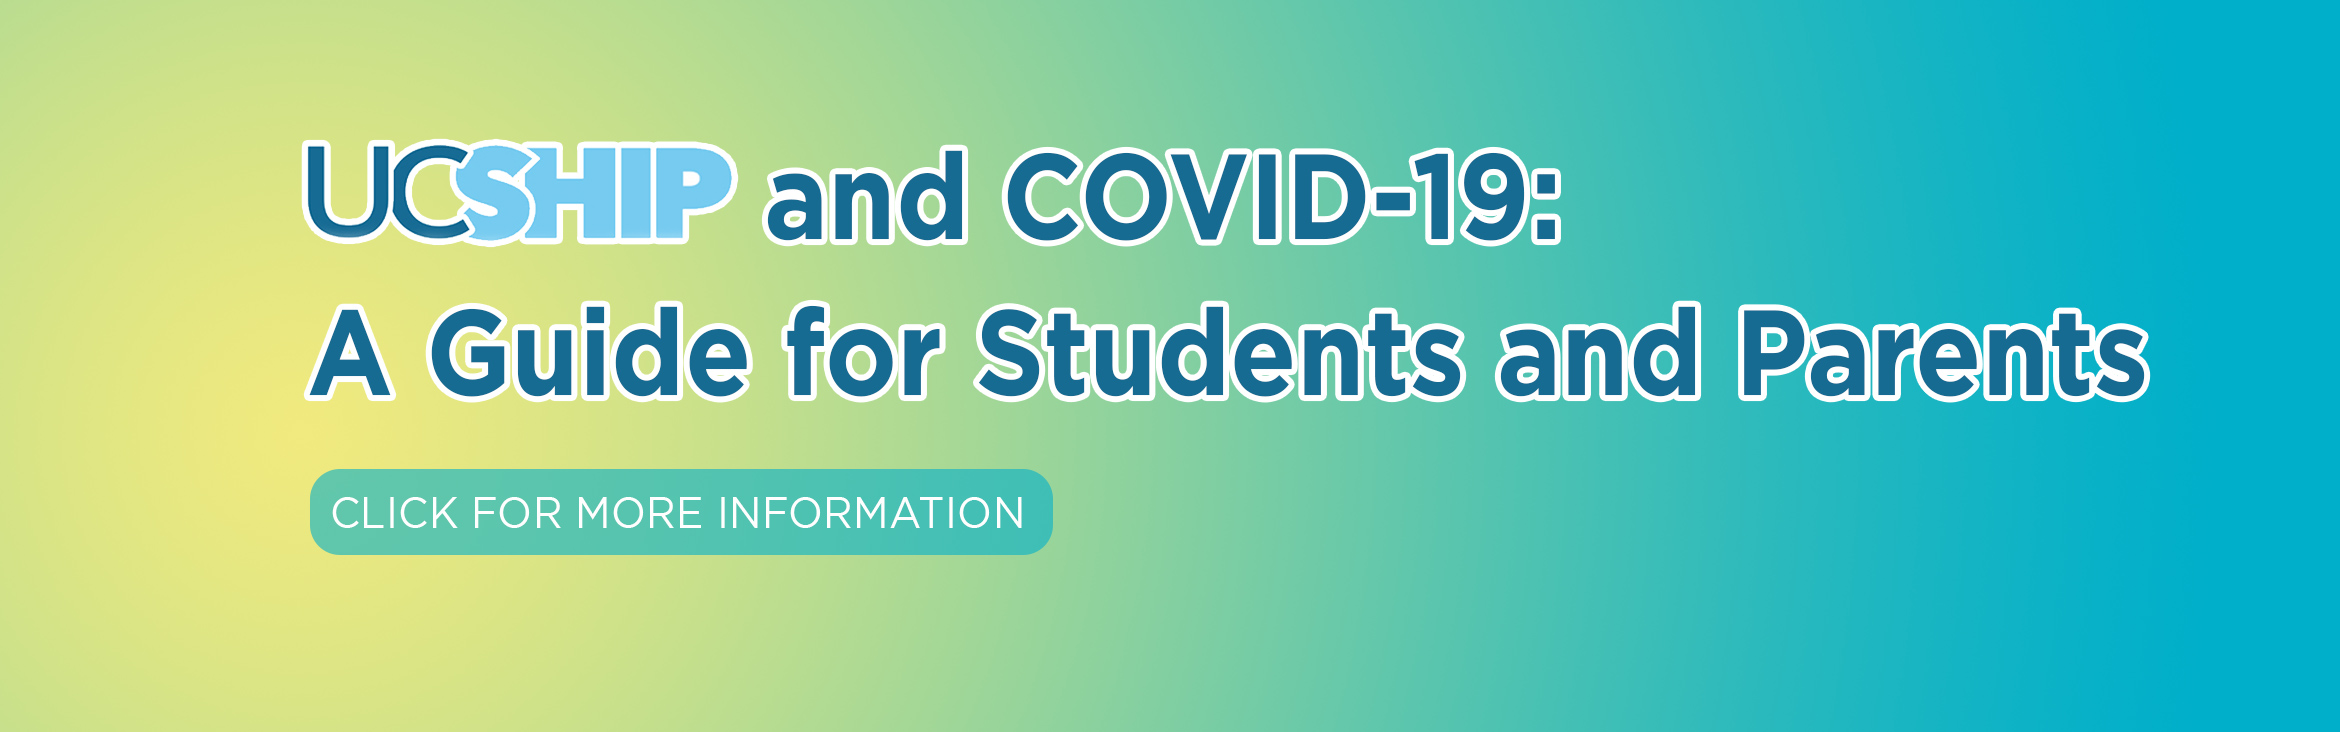 UCSHIP and COVID-19:  A Guide for Students and Parents, click for more information